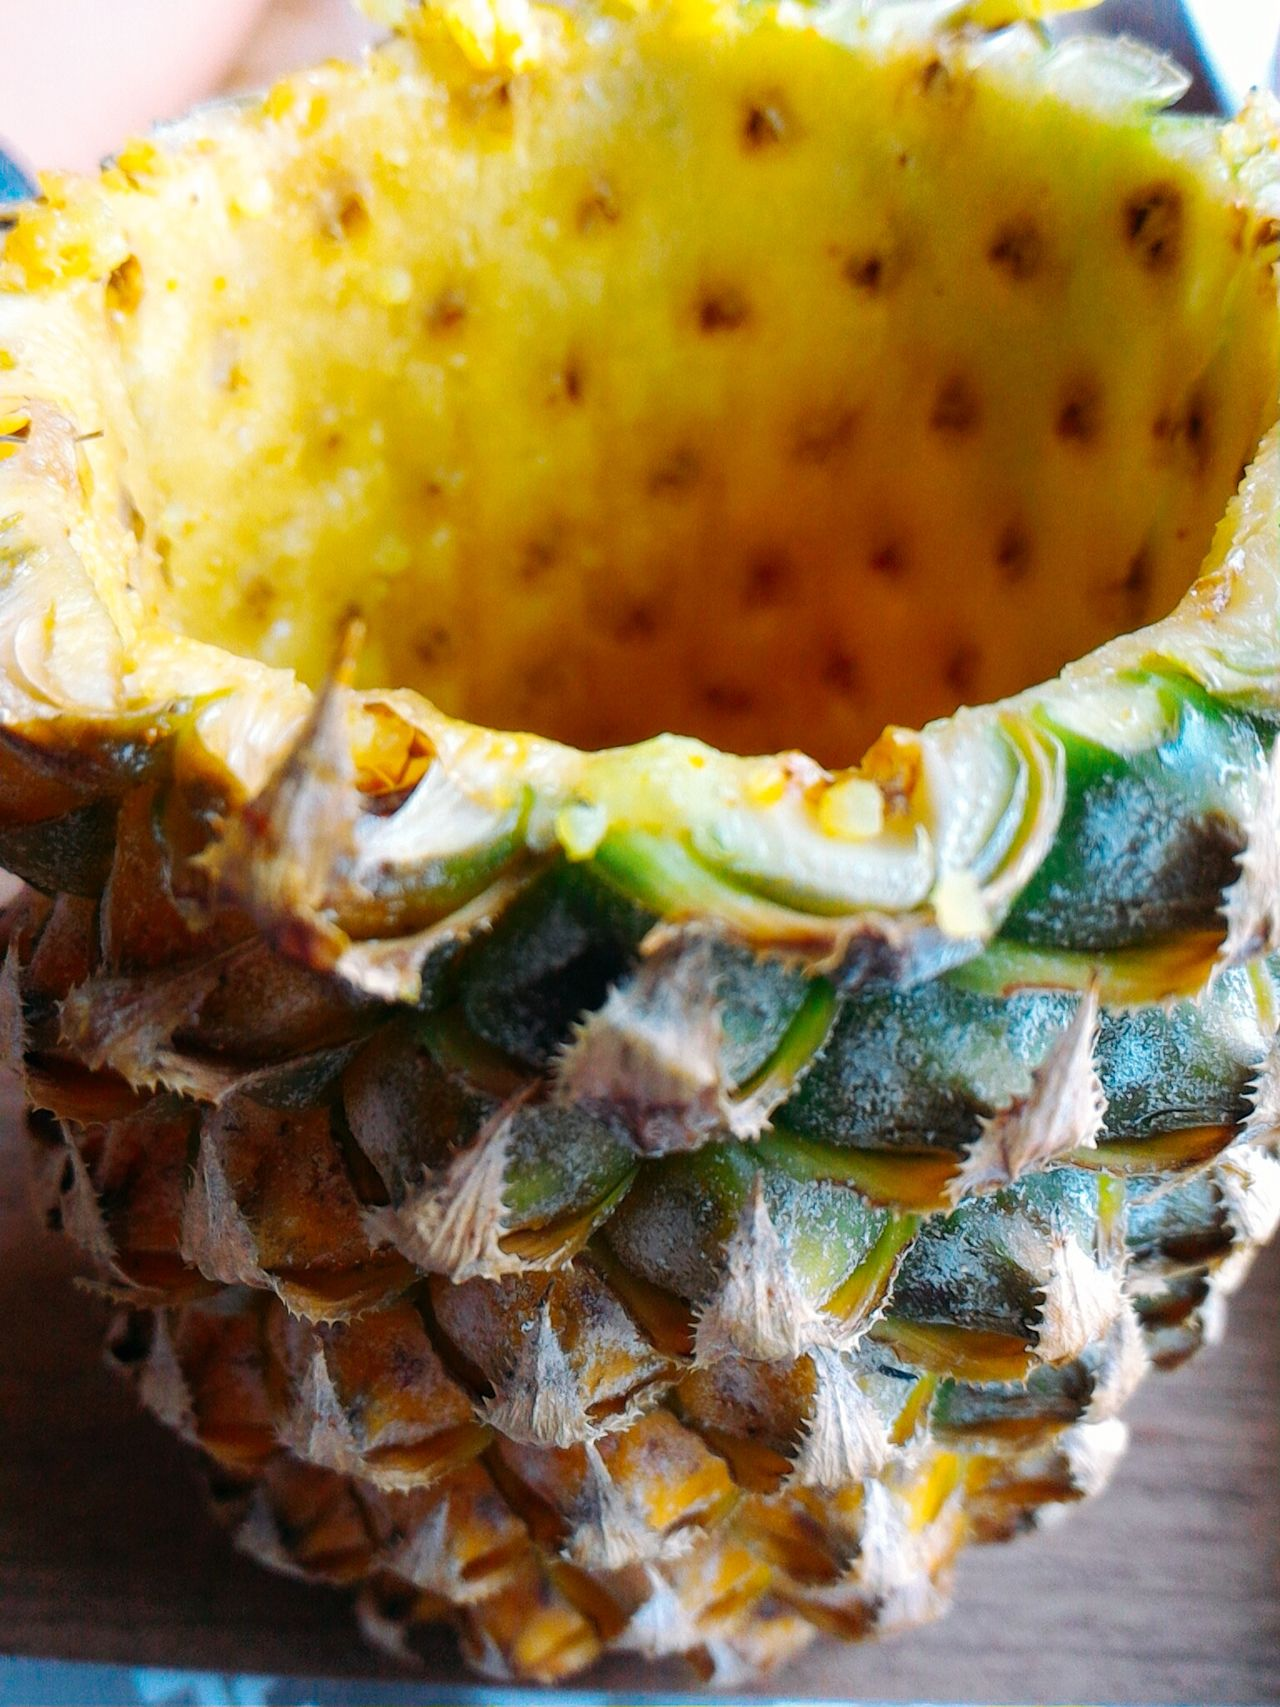 Close-up No People Freshness Food Fruit Fruit Photography Pineapple🍍 Pineapple Ananas EyeEm Fruit Collection Eyeem Fruits